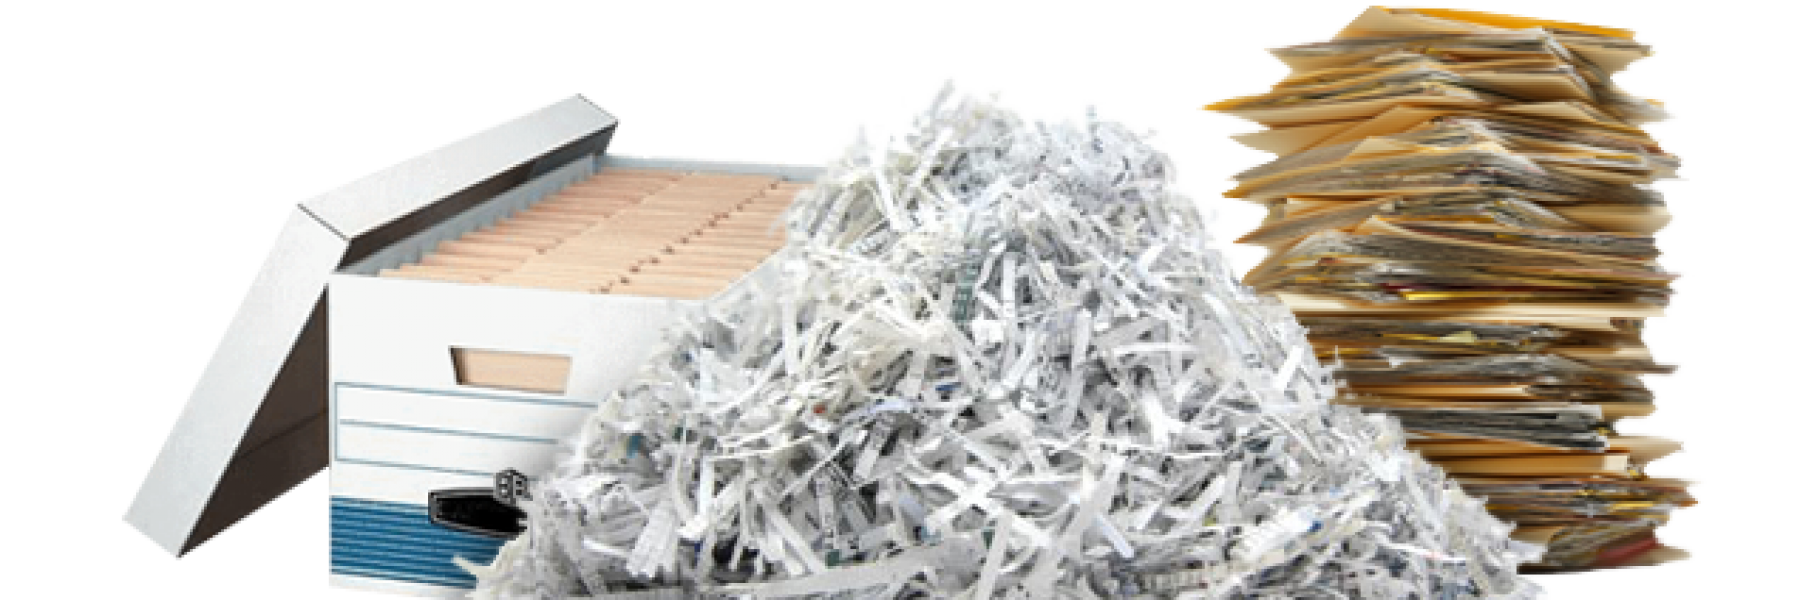 residential paper shredding